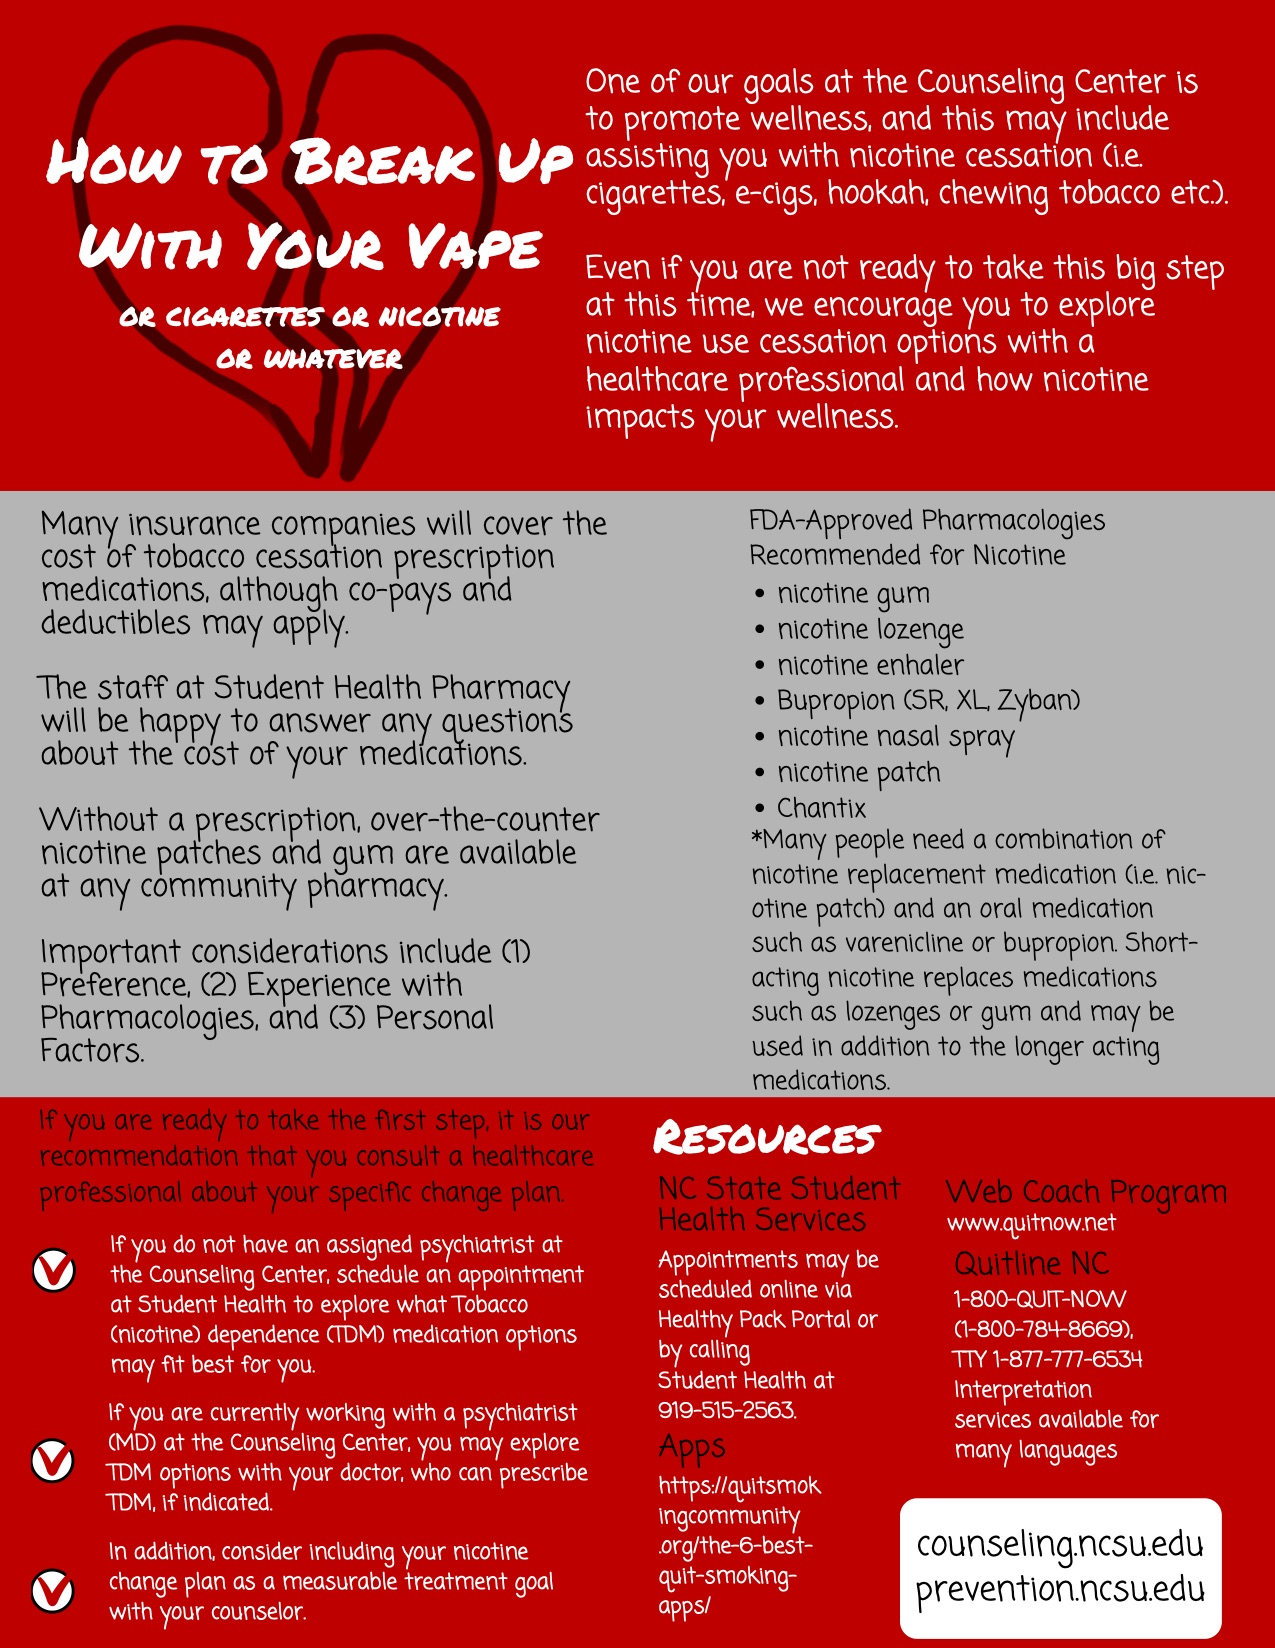 infographic about how to break up with your vape